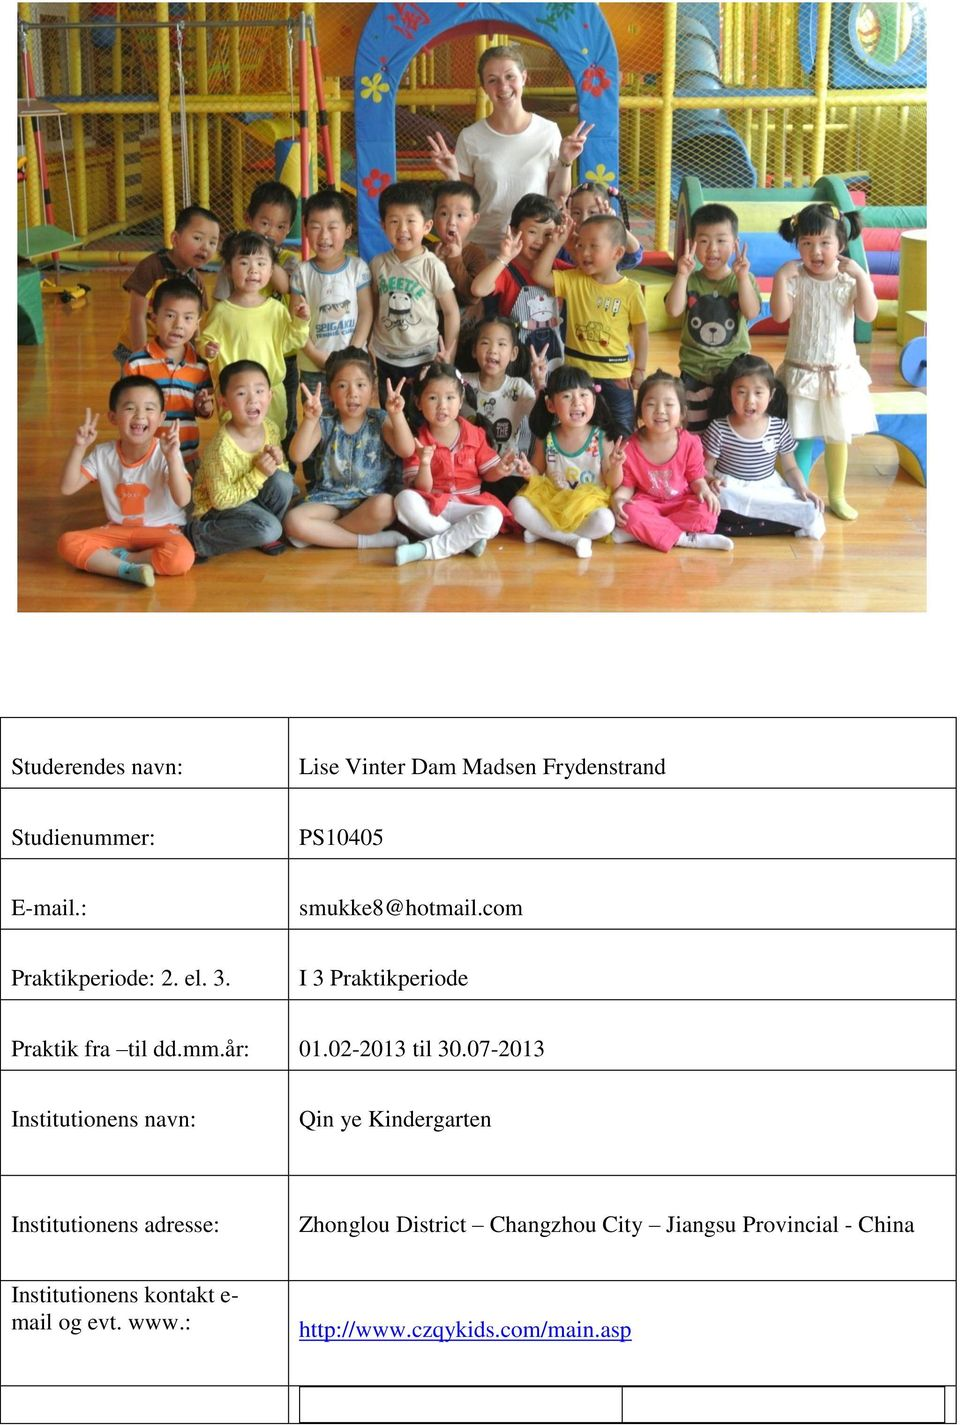 07-2013 Institutionens navn: Qin ye Kindergarten Institutionens adresse: Zhonglou District Changzhou